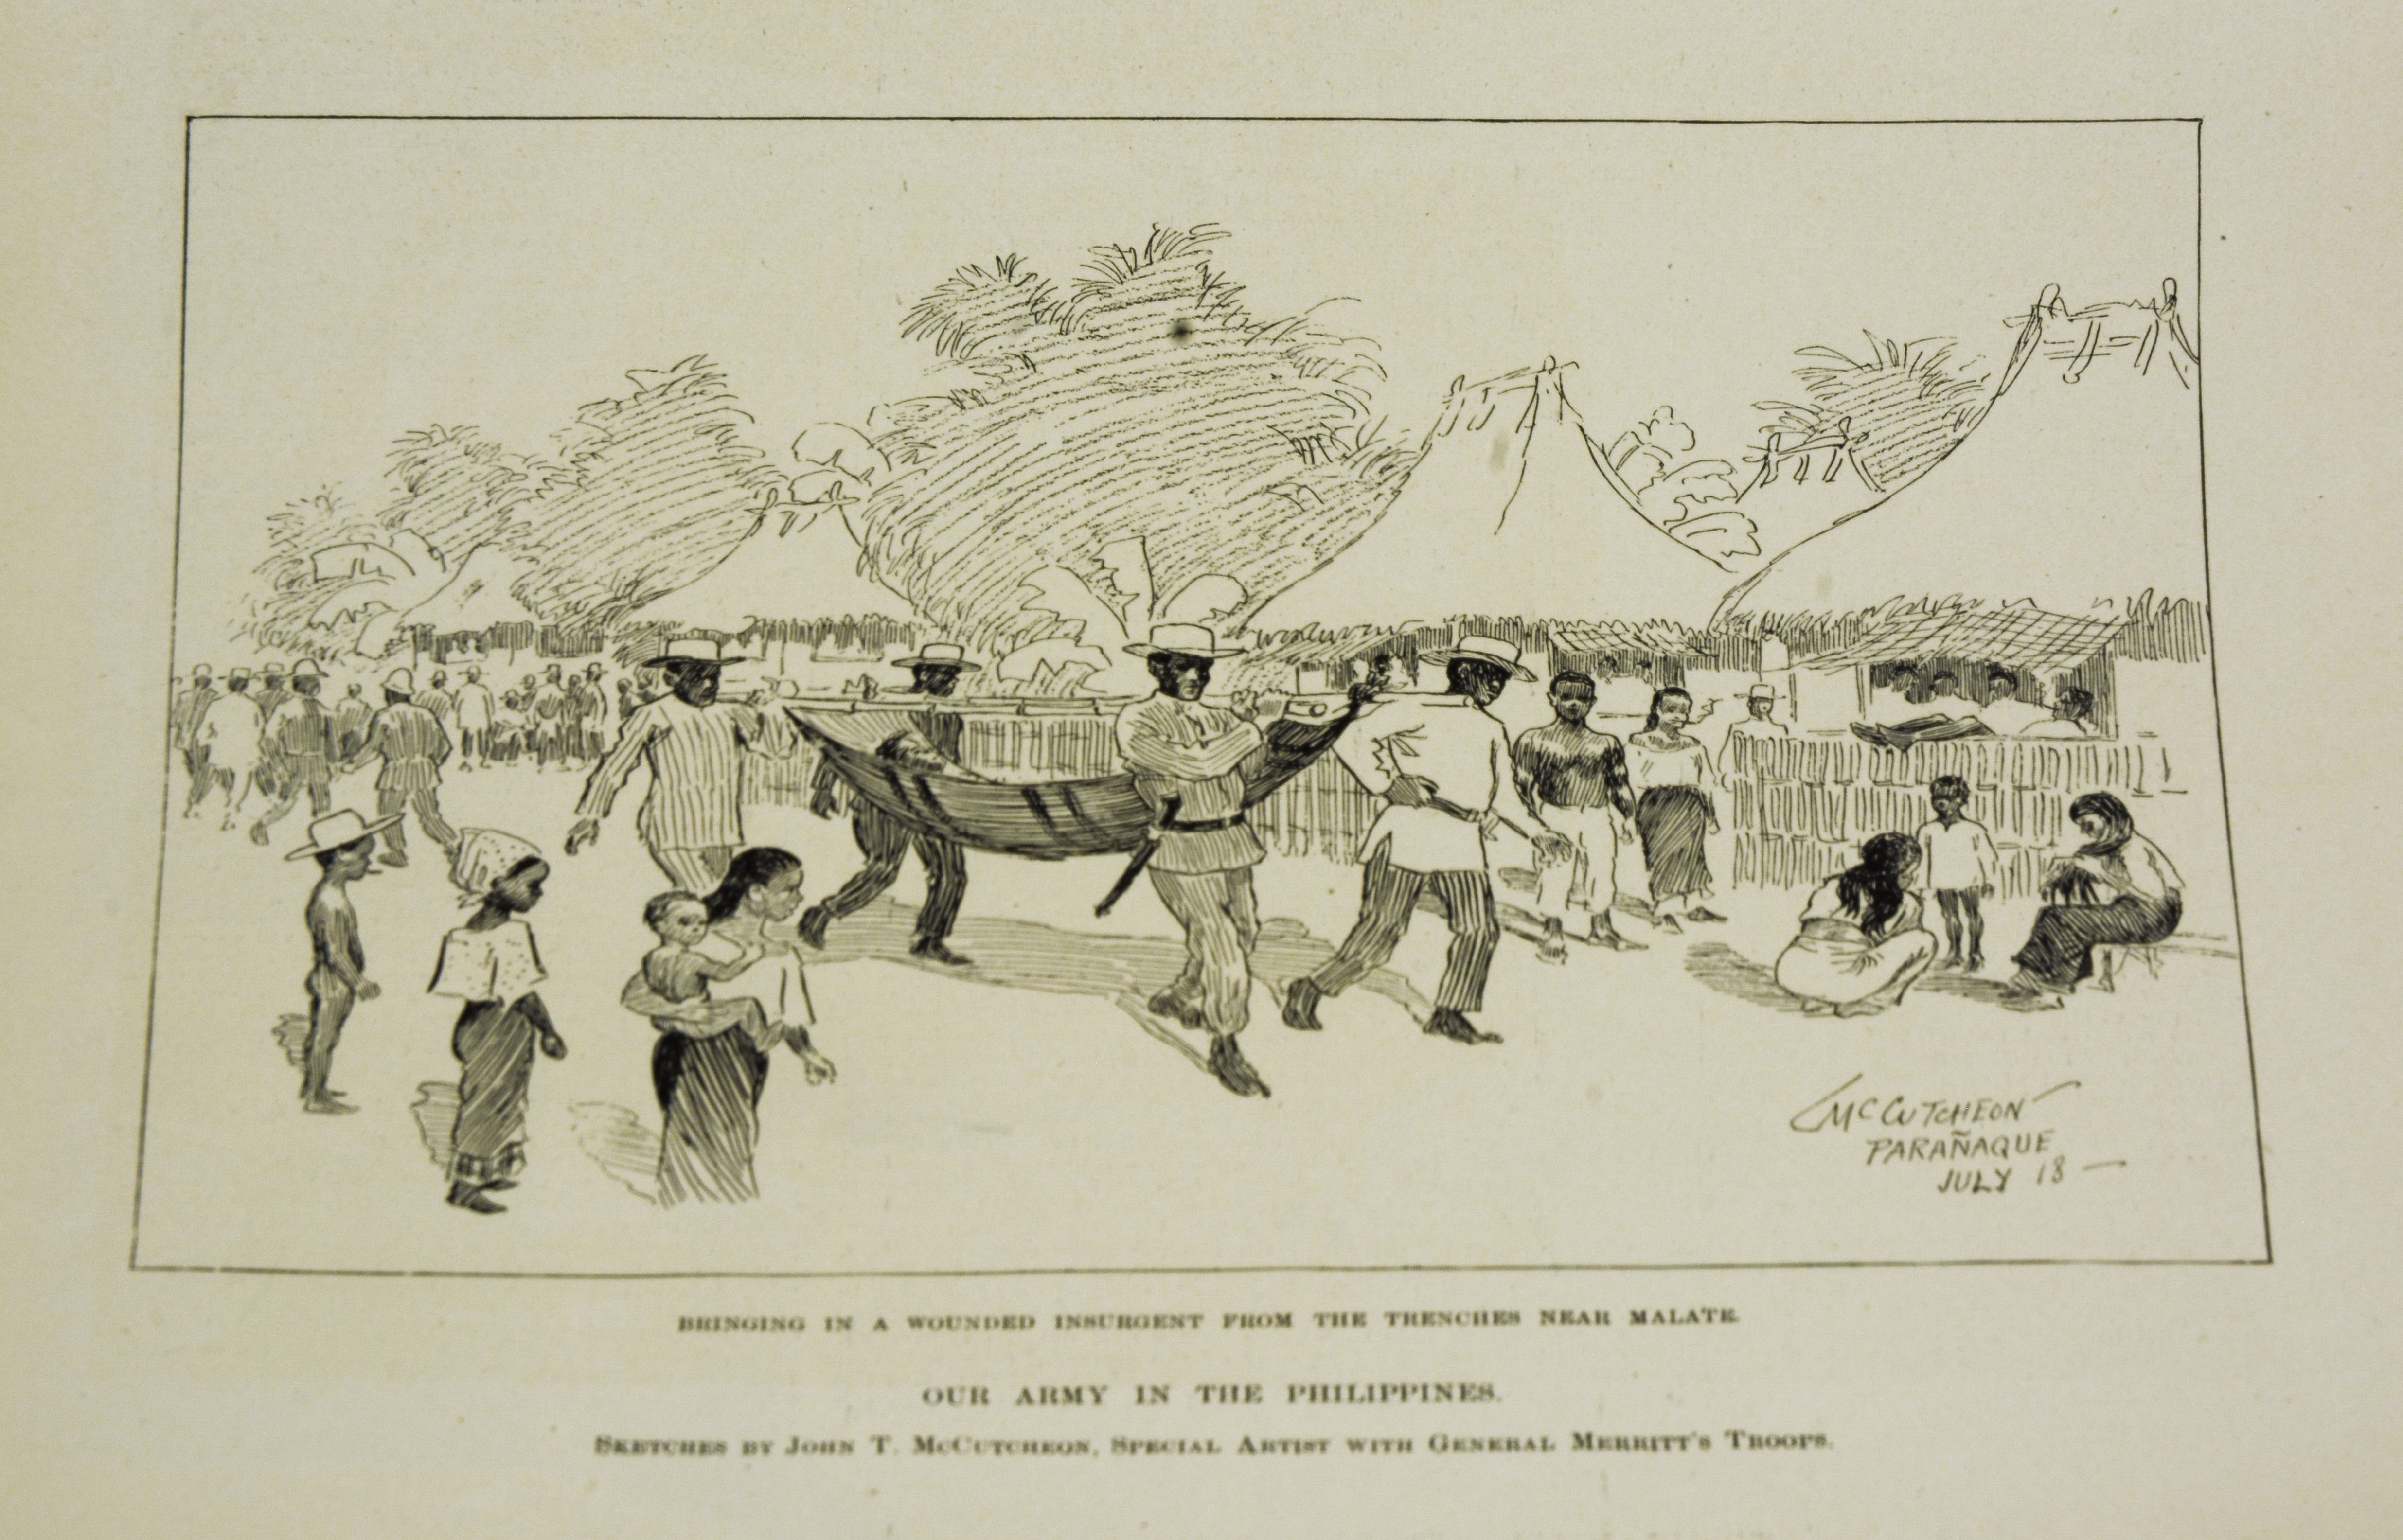 """Illustration owned by Paulla Santos. Created in September 3, 1898  Acquired in June 2017  Acquired from Odana Antiques & Fine Arts Center, Madison, WI.  Made in New York City, Harper's Weekly. Harper & Brothers Publishers.  Was purchased  It is an illustrations of Filipinos carrying a wounded insurgent.  English is used in the document.  Importance: """"It is important because it is amazing to own something that was created during a huge turning point in Philippine and US History.""""  Notes from Sarah Carlson, in discussion with Santos: """"[I] Like to go antiquing, found some did publications of the Philippines History Student - studying transnational marriages between PI and USA. Amazing to find a PI object in the Midwest. Different sellers throughout antique shop seller got it at garage sale. Got it last month, saving money to frame right now in a bag. Confusing caption - who are """"our army"""" who is the """"Insurgent"""". Taking a summer intern program at Madison, class trip to Chicago. Went on collections tour, heard about digitization. Connects two parents' history family history which inspired research connection to the Philippines, found in Midwest.   Any views, findings, conclusions, or recommendations expressed in this story do not necessarily represent those of the National Endowment for the Humanities. [Copyright] Field Museum of Natural History - CC BY-NC"""